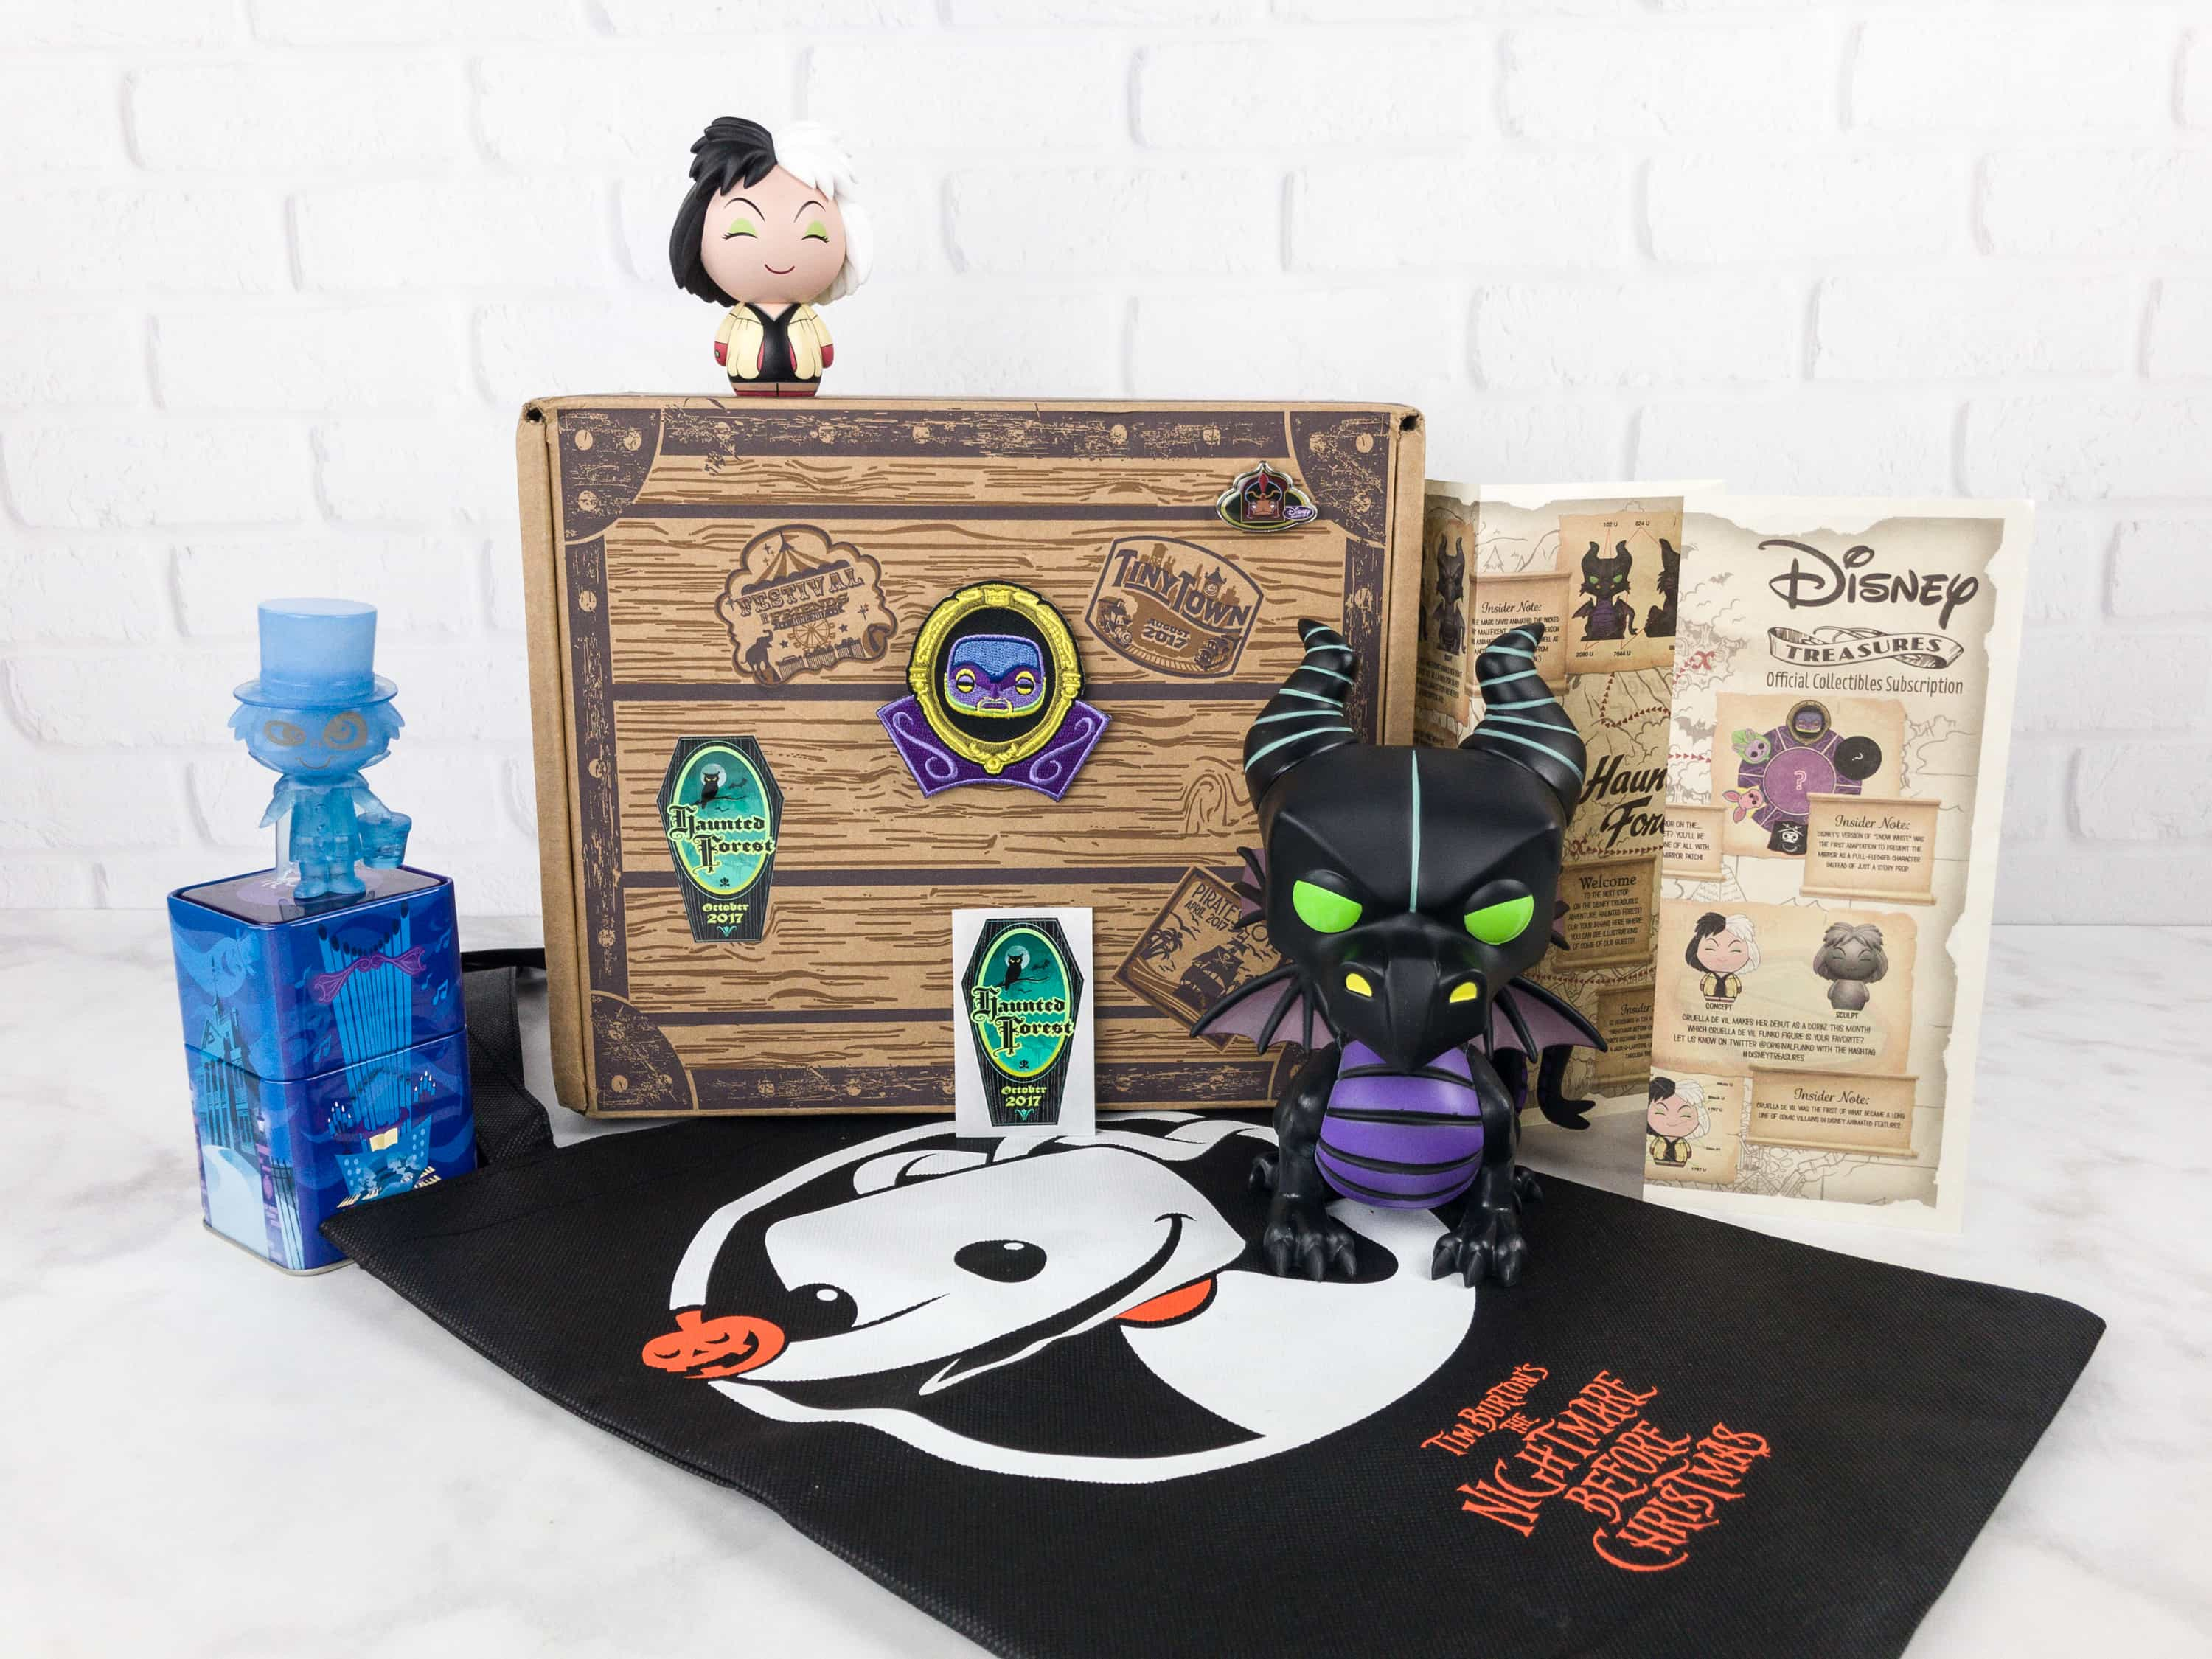 Disney Treasures October 2017 Subscription Box Review